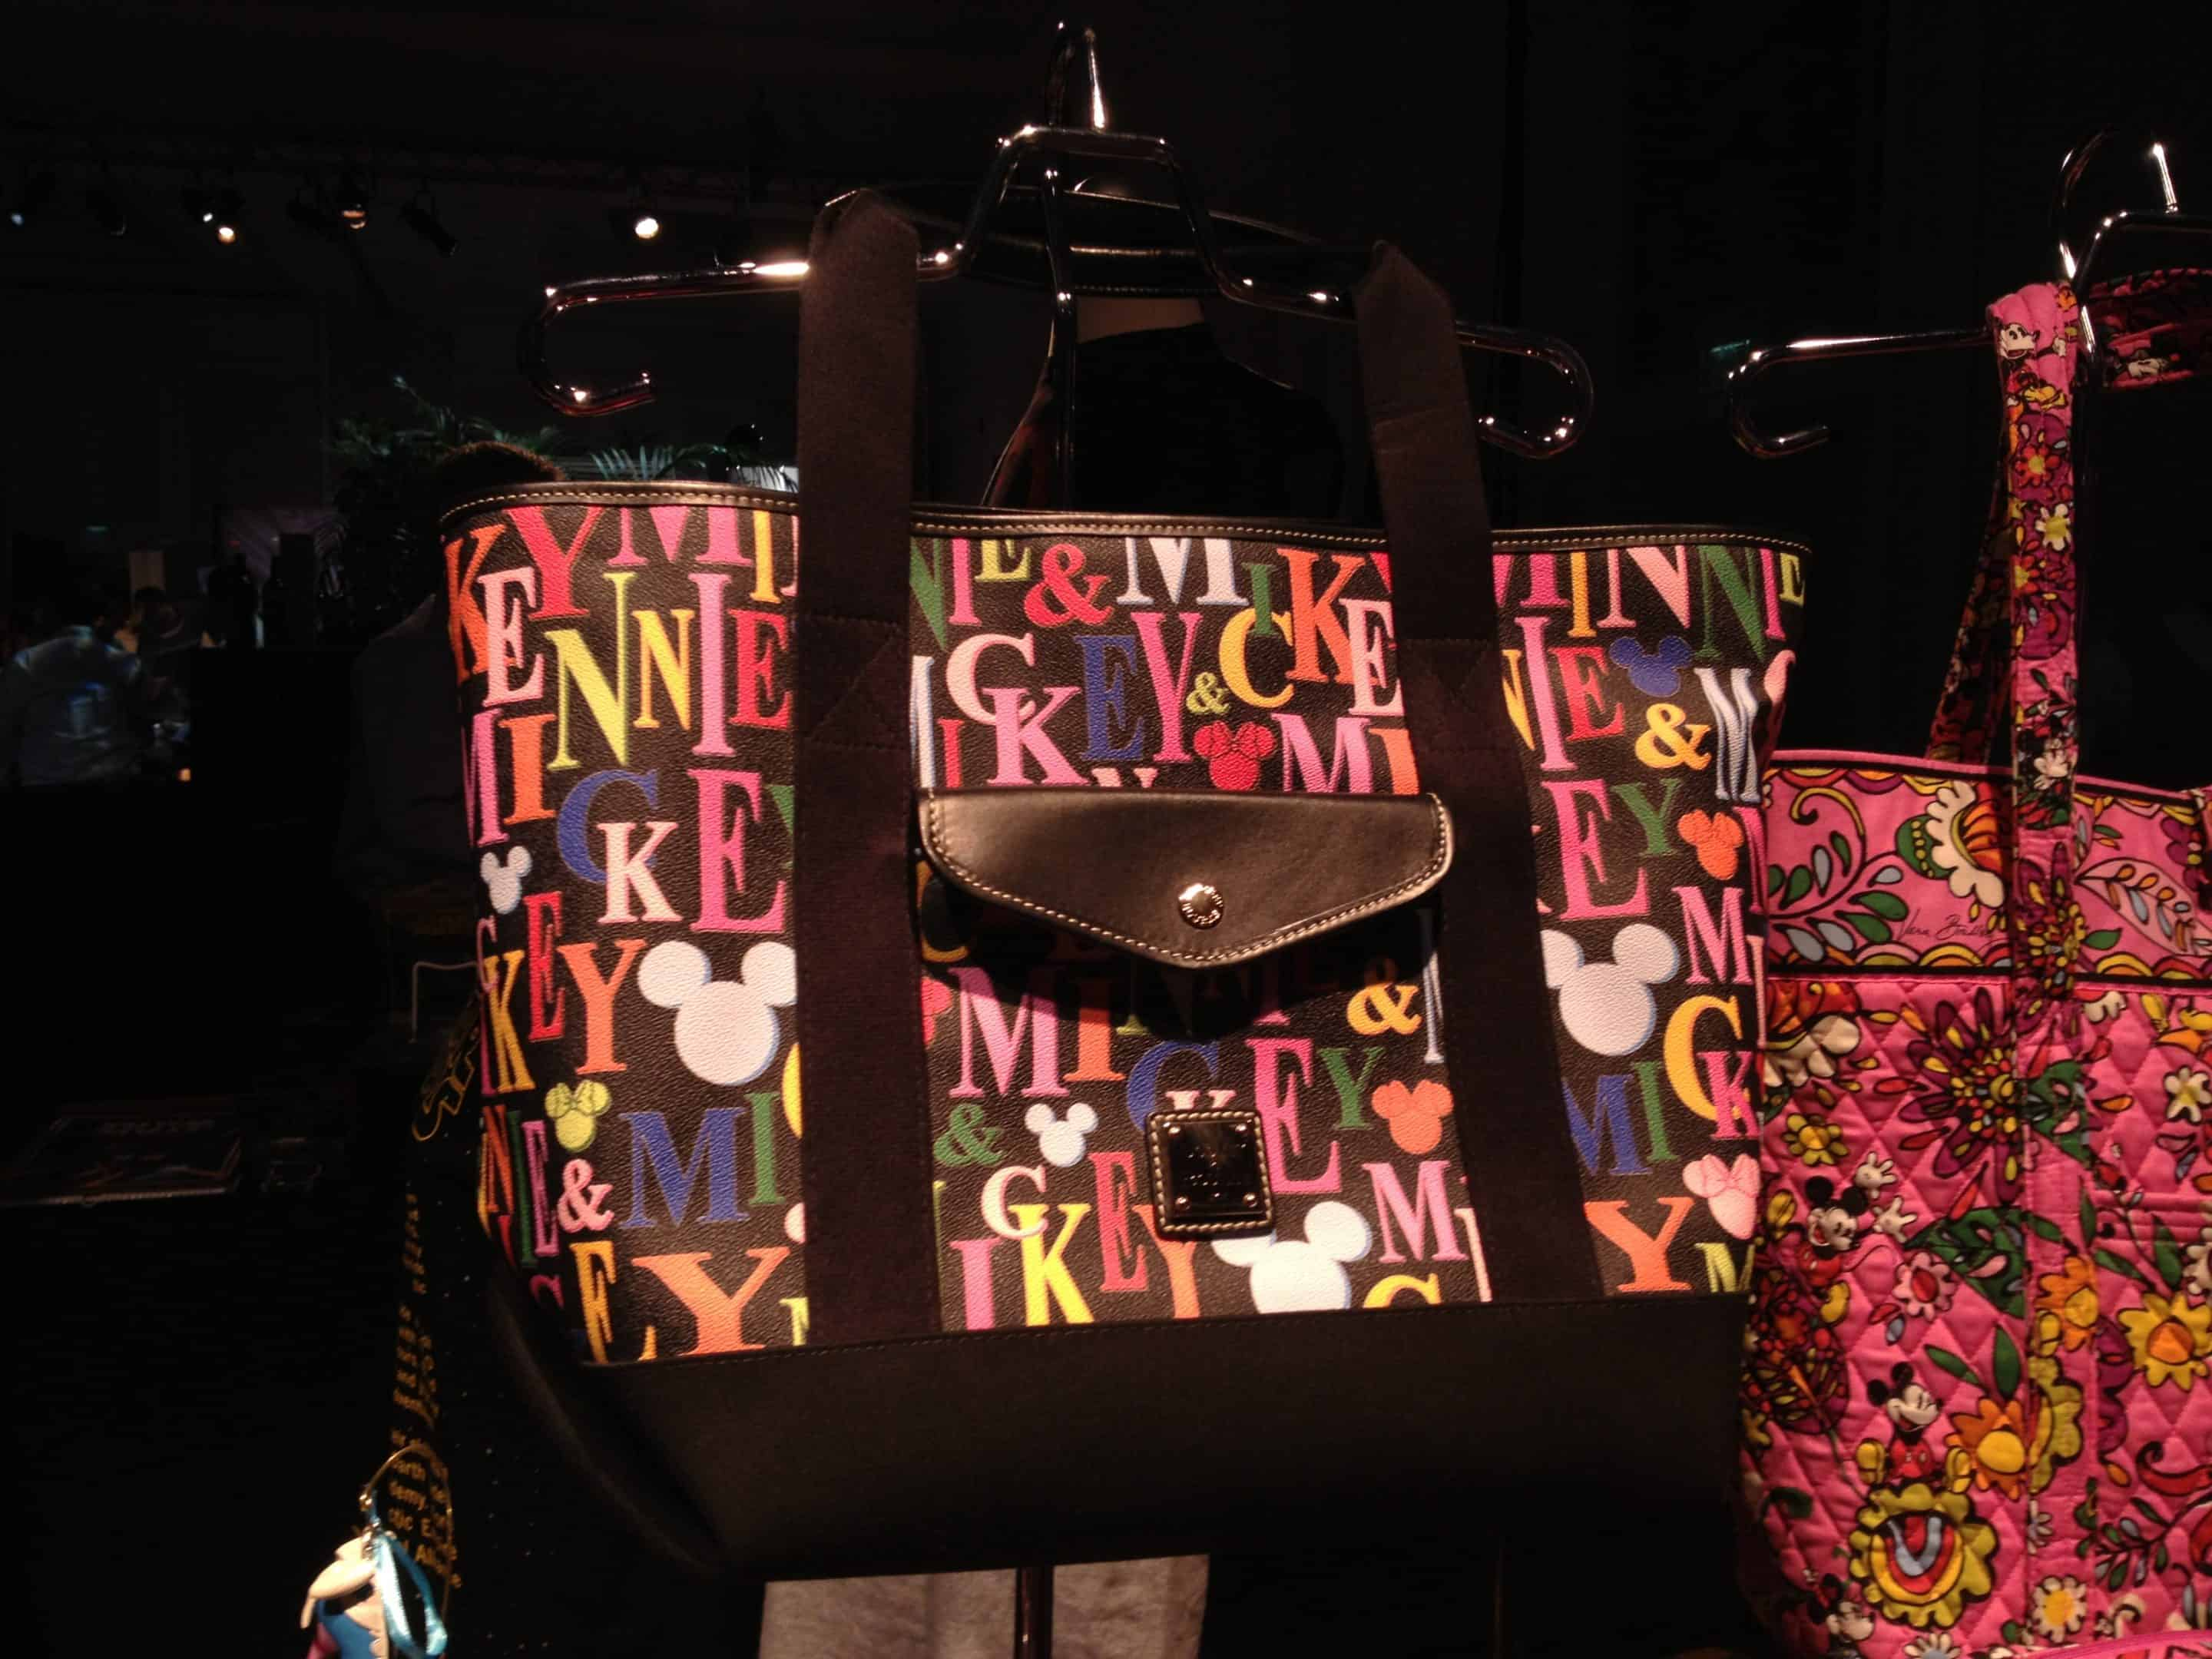 New Disney Dooney & Bourke Design to Debut This Summer